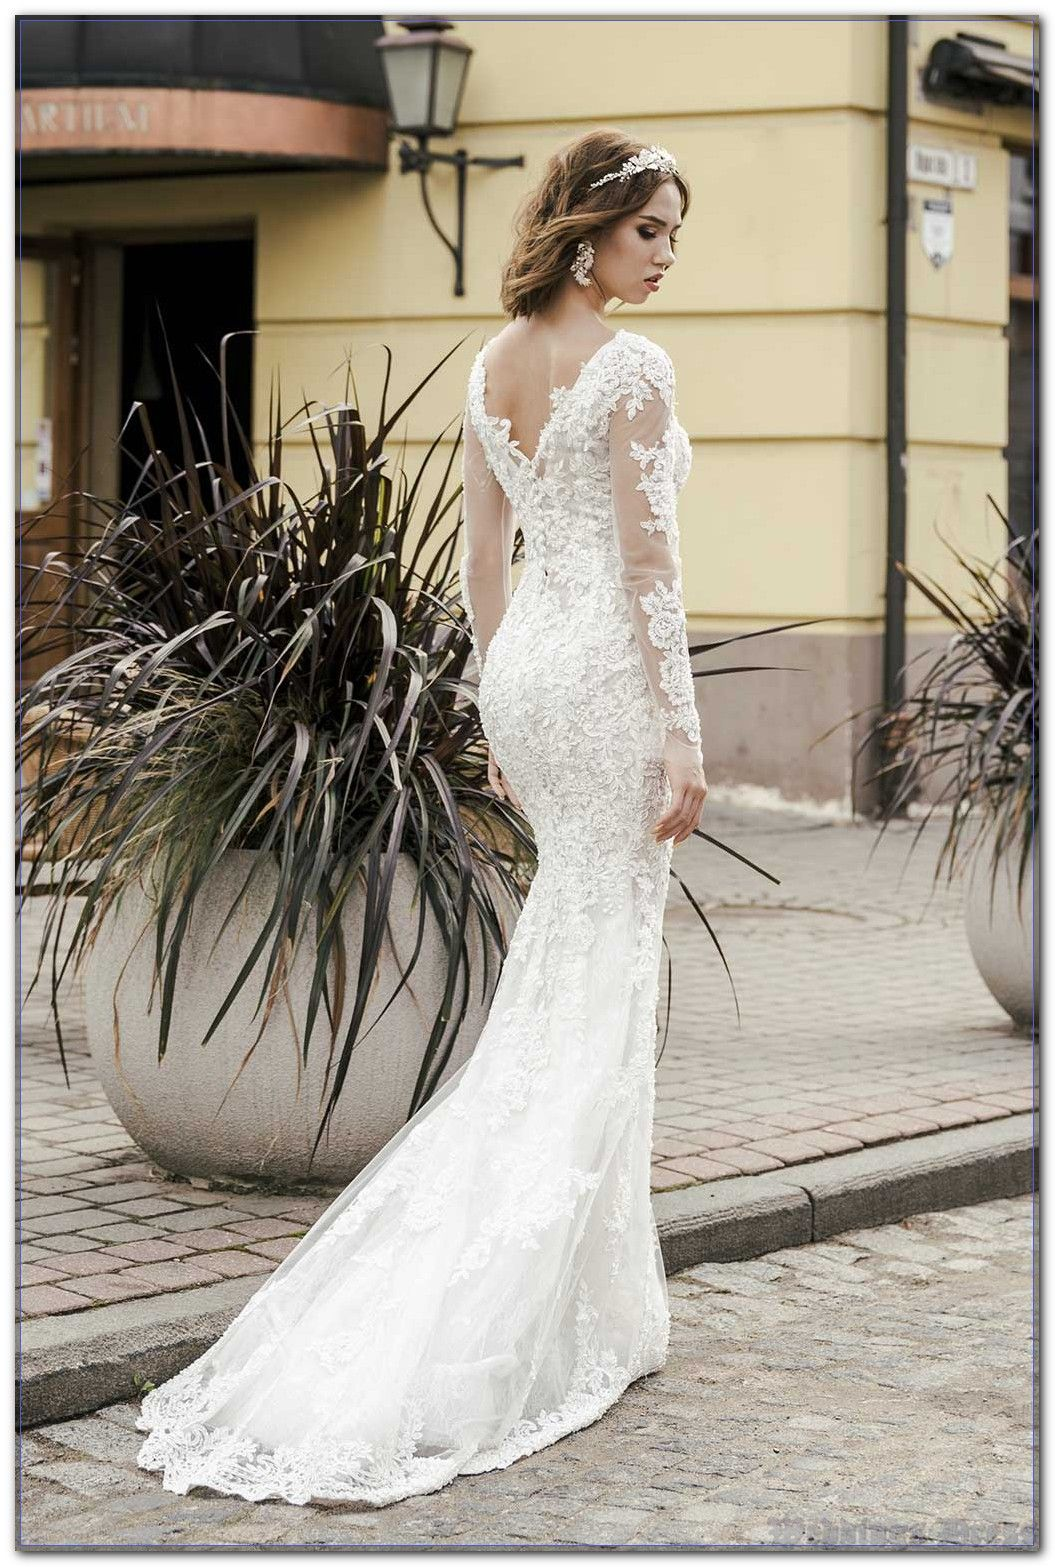 How To Win Buyers And Influence Sales with Weddings Dress